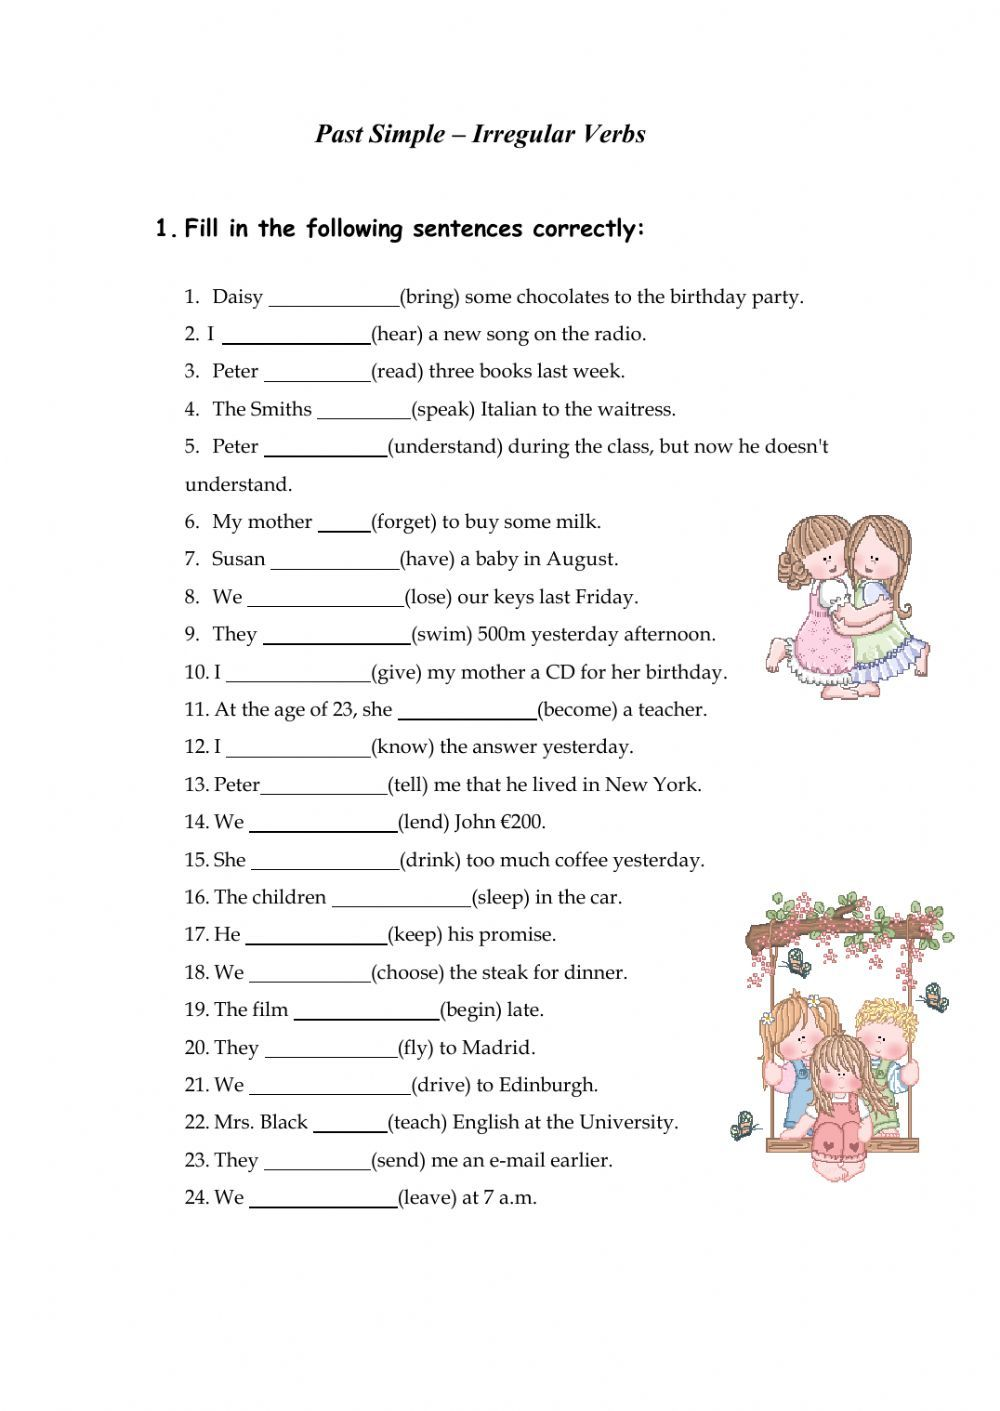 Irregular Verbs Interactive And Downloadable Worksheet Check Your Answers Online Or Send Them To Pasado Simple Ingles Ejercicios De Ingles Ensenanza De Ingles [ 1411 x 1000 Pixel ]